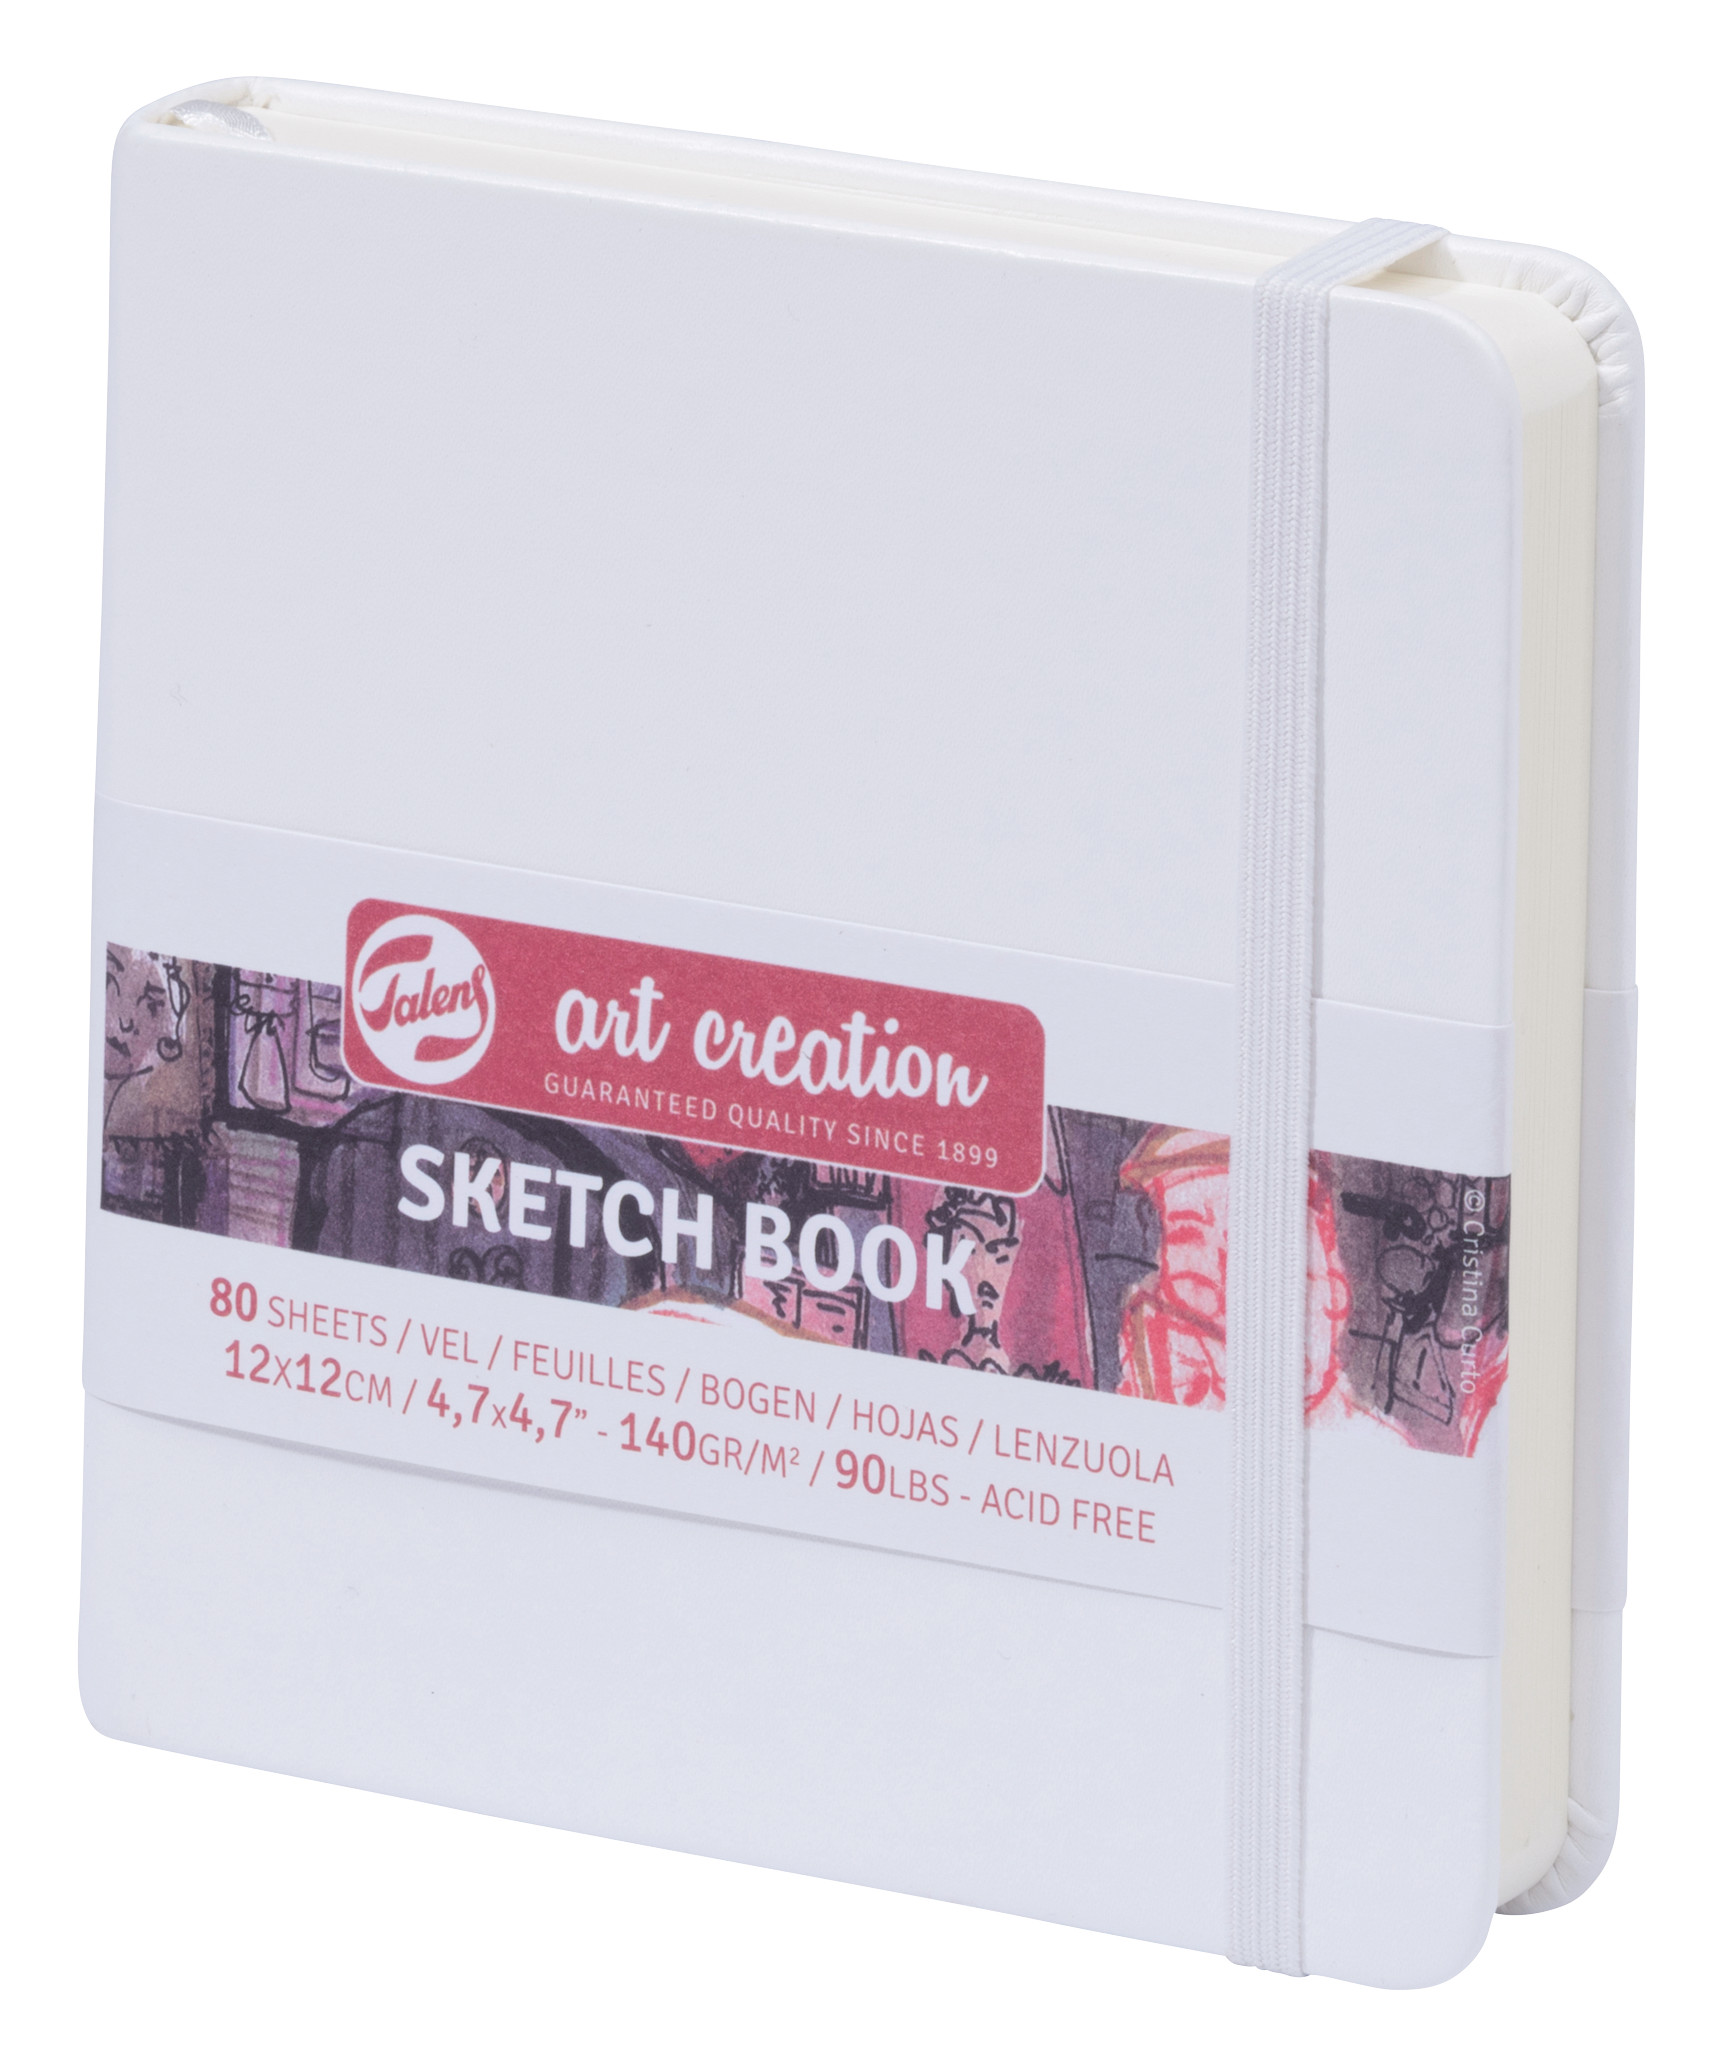 Talens Art Creation Sketchbook White 12X12 cm, 140 Grams